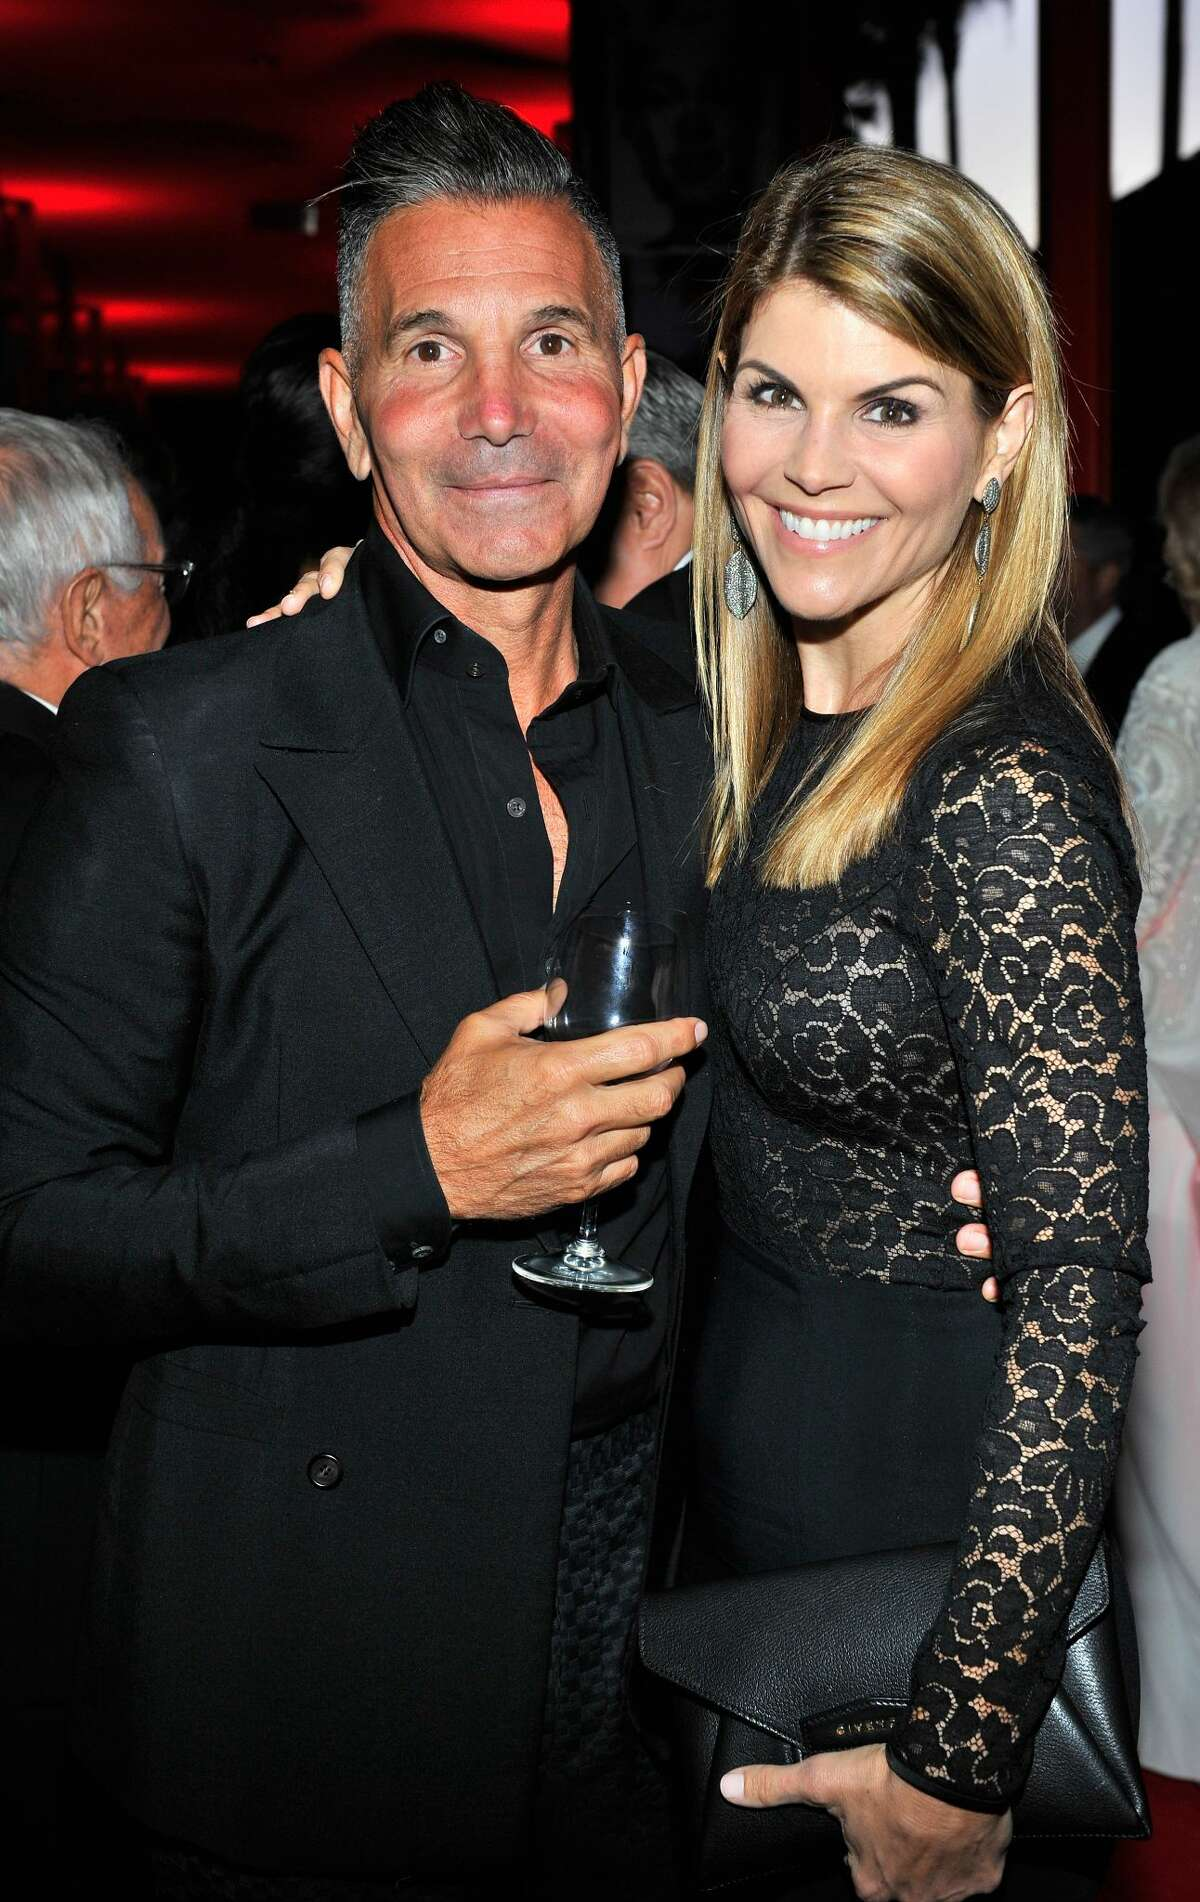 THE PARENTS Designer Mossimo Giannulli and actress Lori Loughlin were indicted.